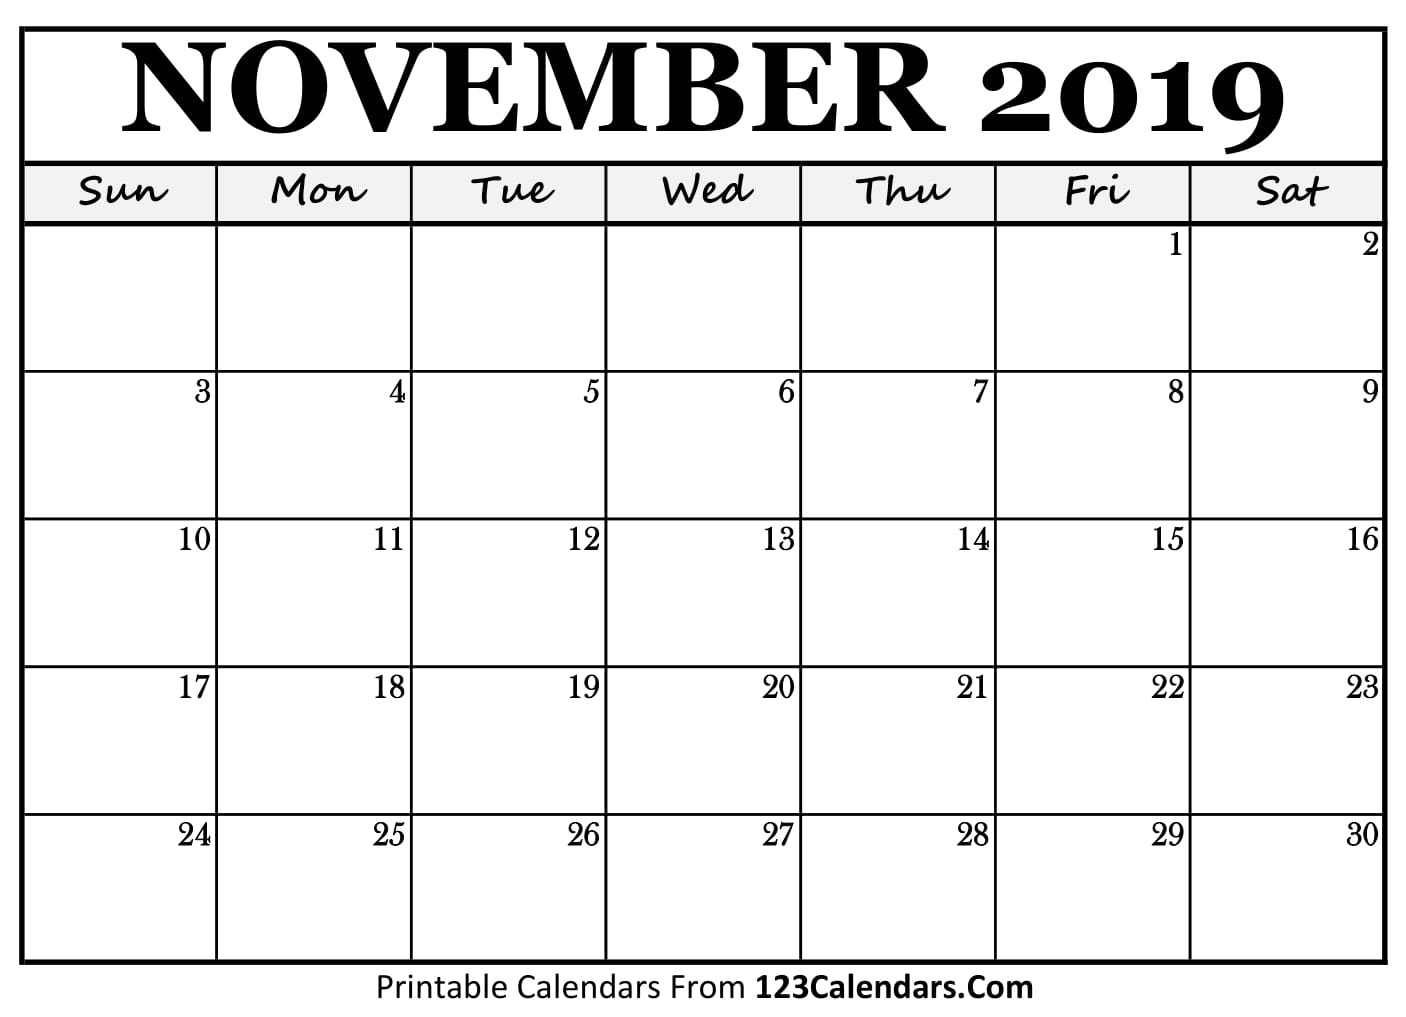 photograph about Printable Calendar November named November 2019 Printable Calendar